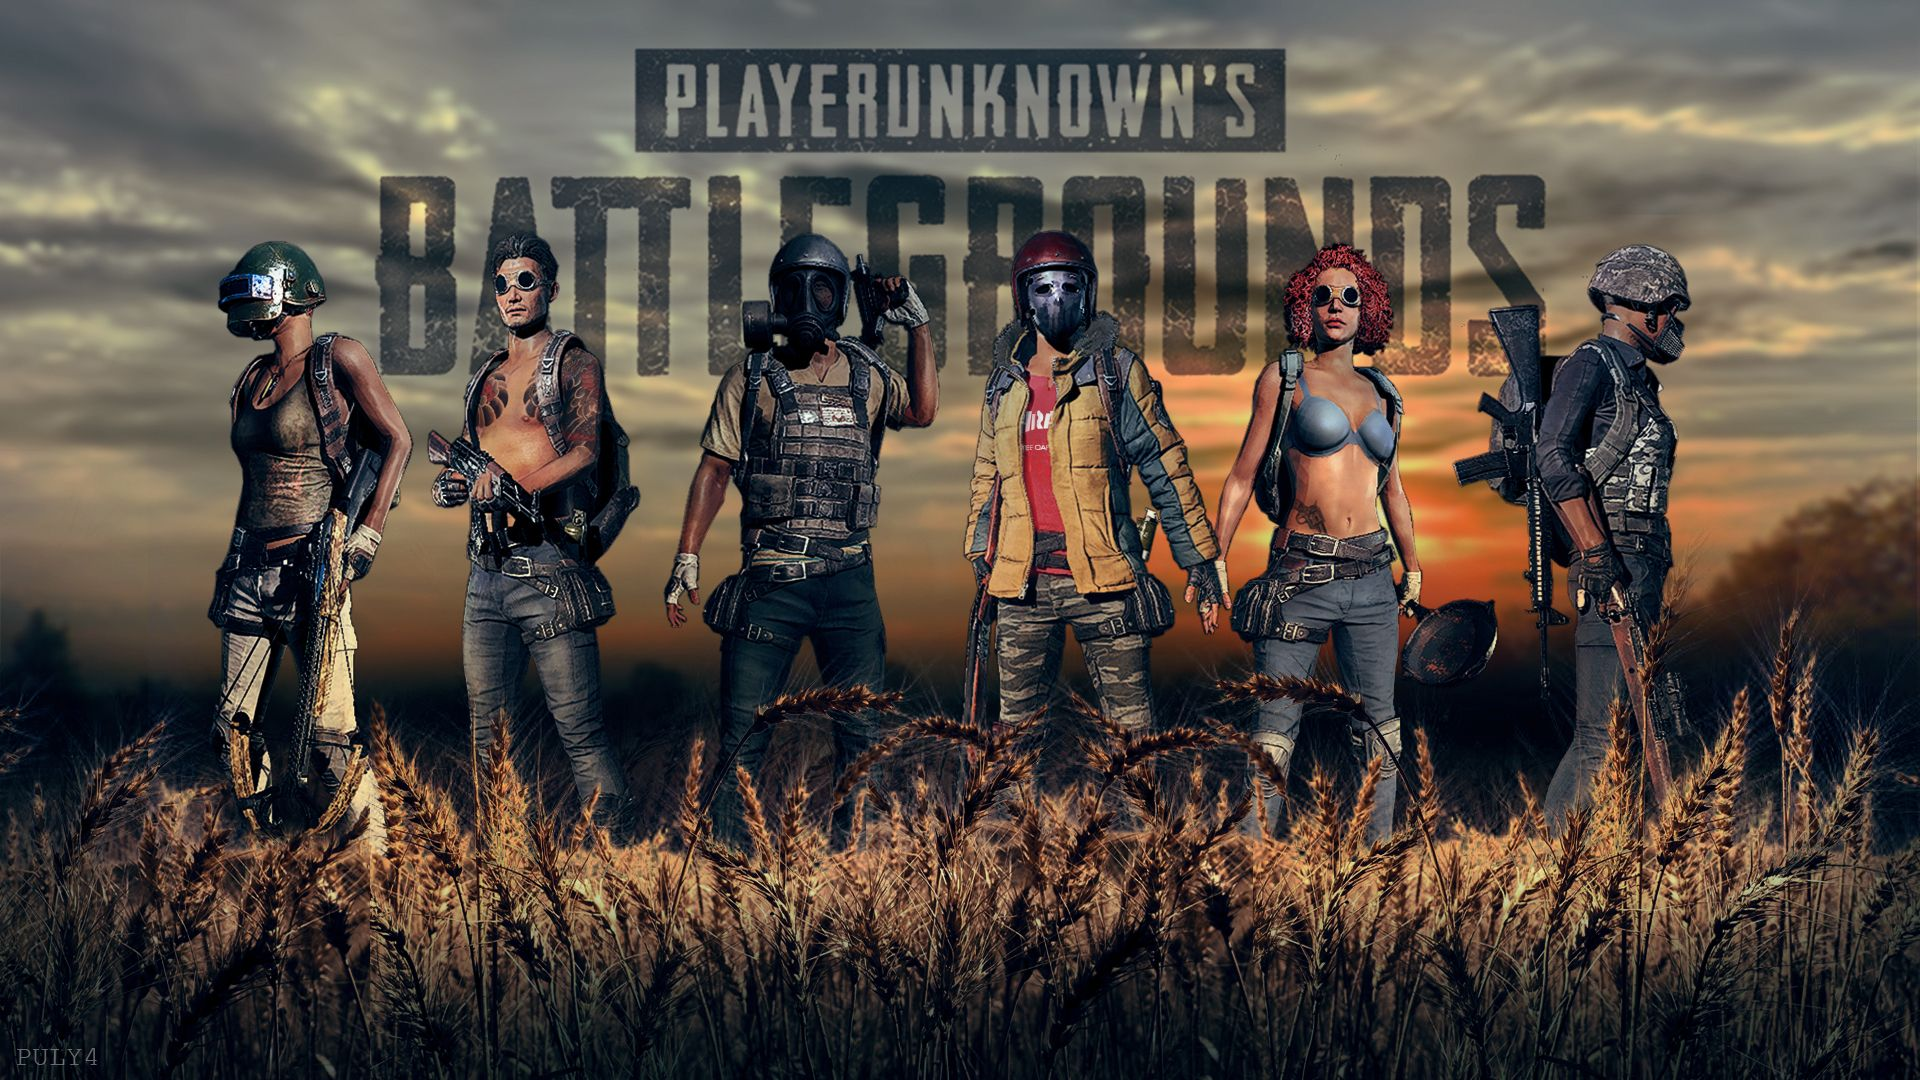 Pubg Wallpapers High Quality Resolution On Wallpaper 1080p Hd Pc Desktop Wallpaper Hd Wallpapers For Pc 4k Photos